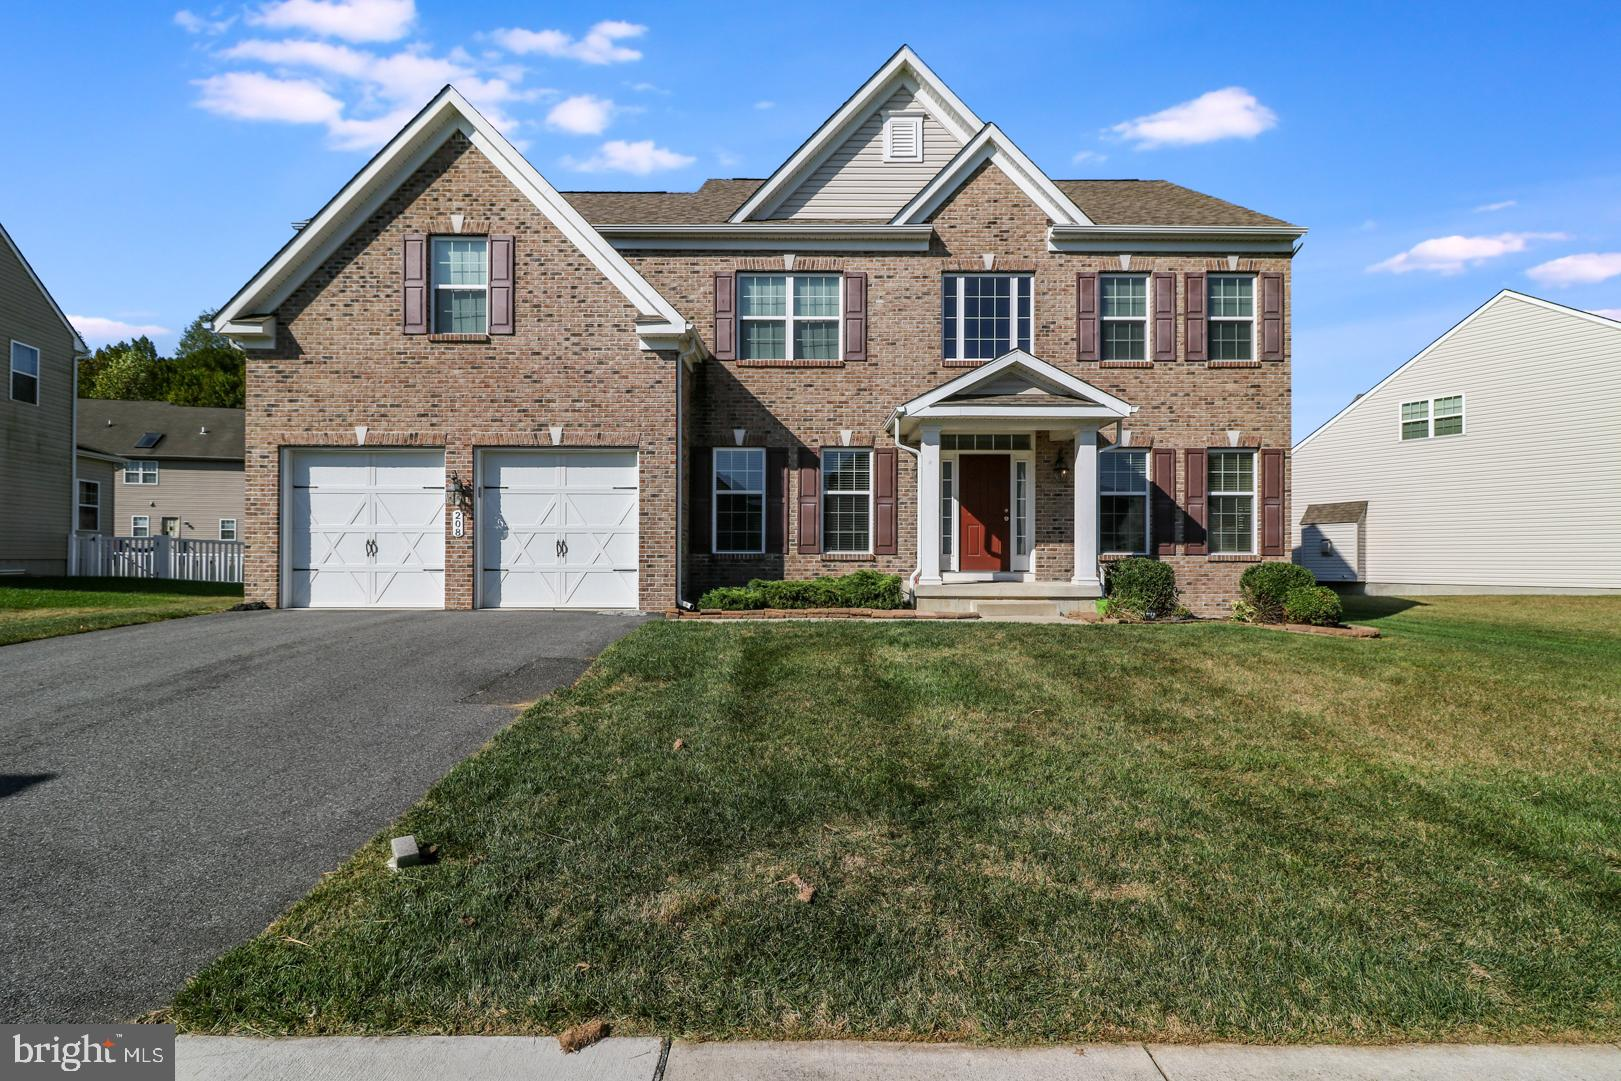 208 MICHELLE COURT, NEWARK, DE 19702